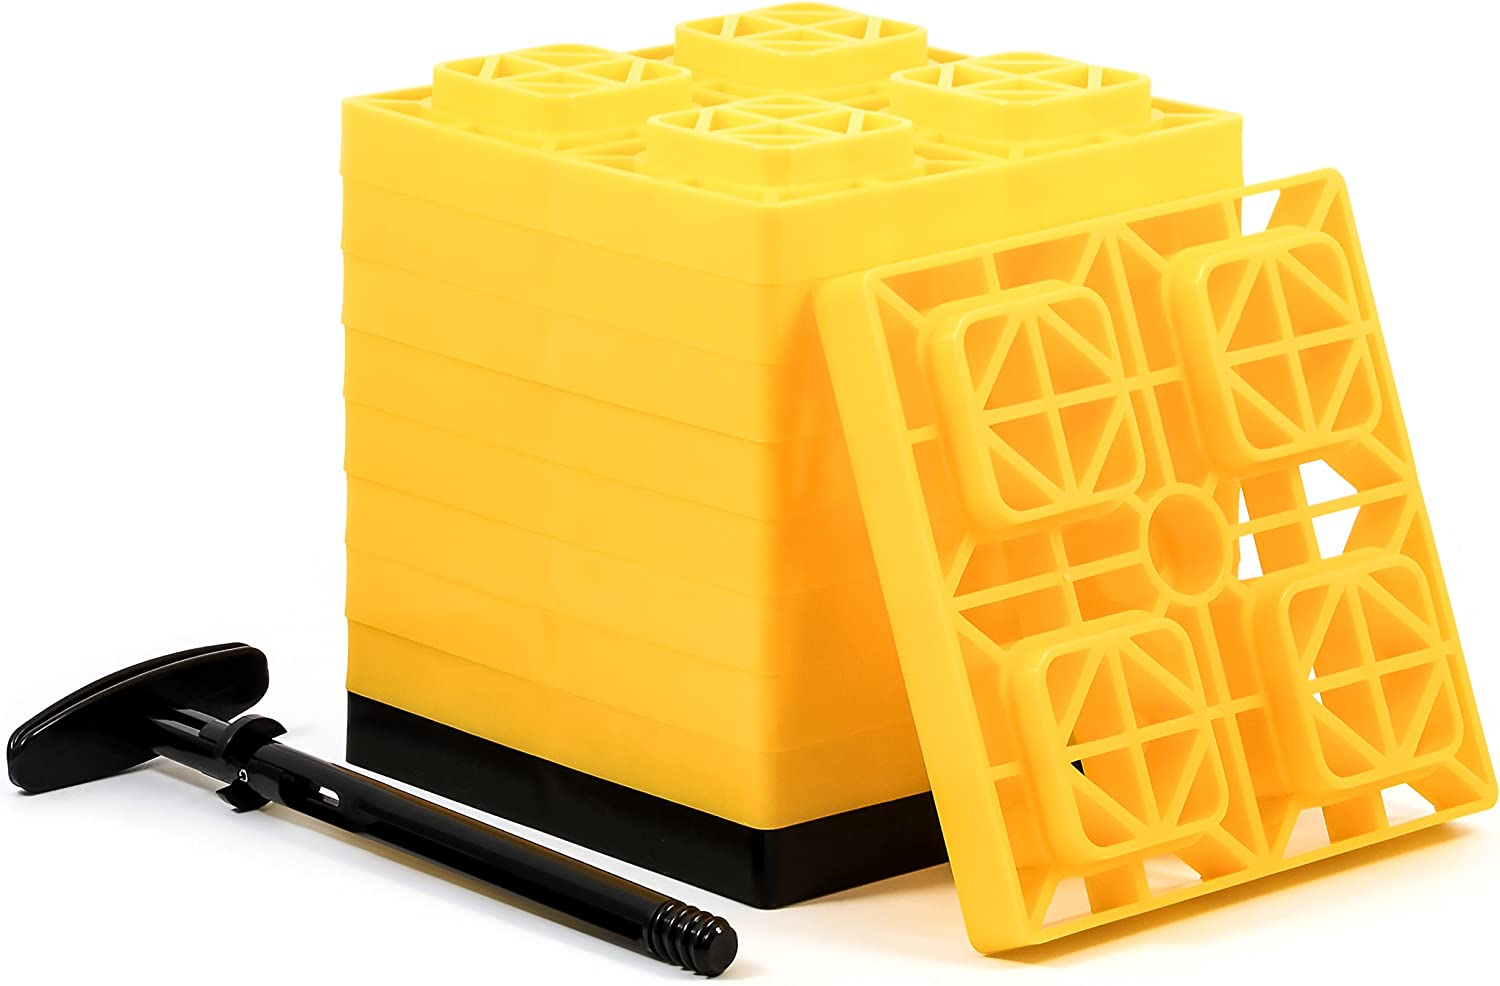 Camco FasTen 2x2 RV Leveling Block For Single Tires, Interlocking Design Allows Stacking To Desired Height, Includes Secure T-Handle Carrying System, Yellow (Pack of 10): Automotive